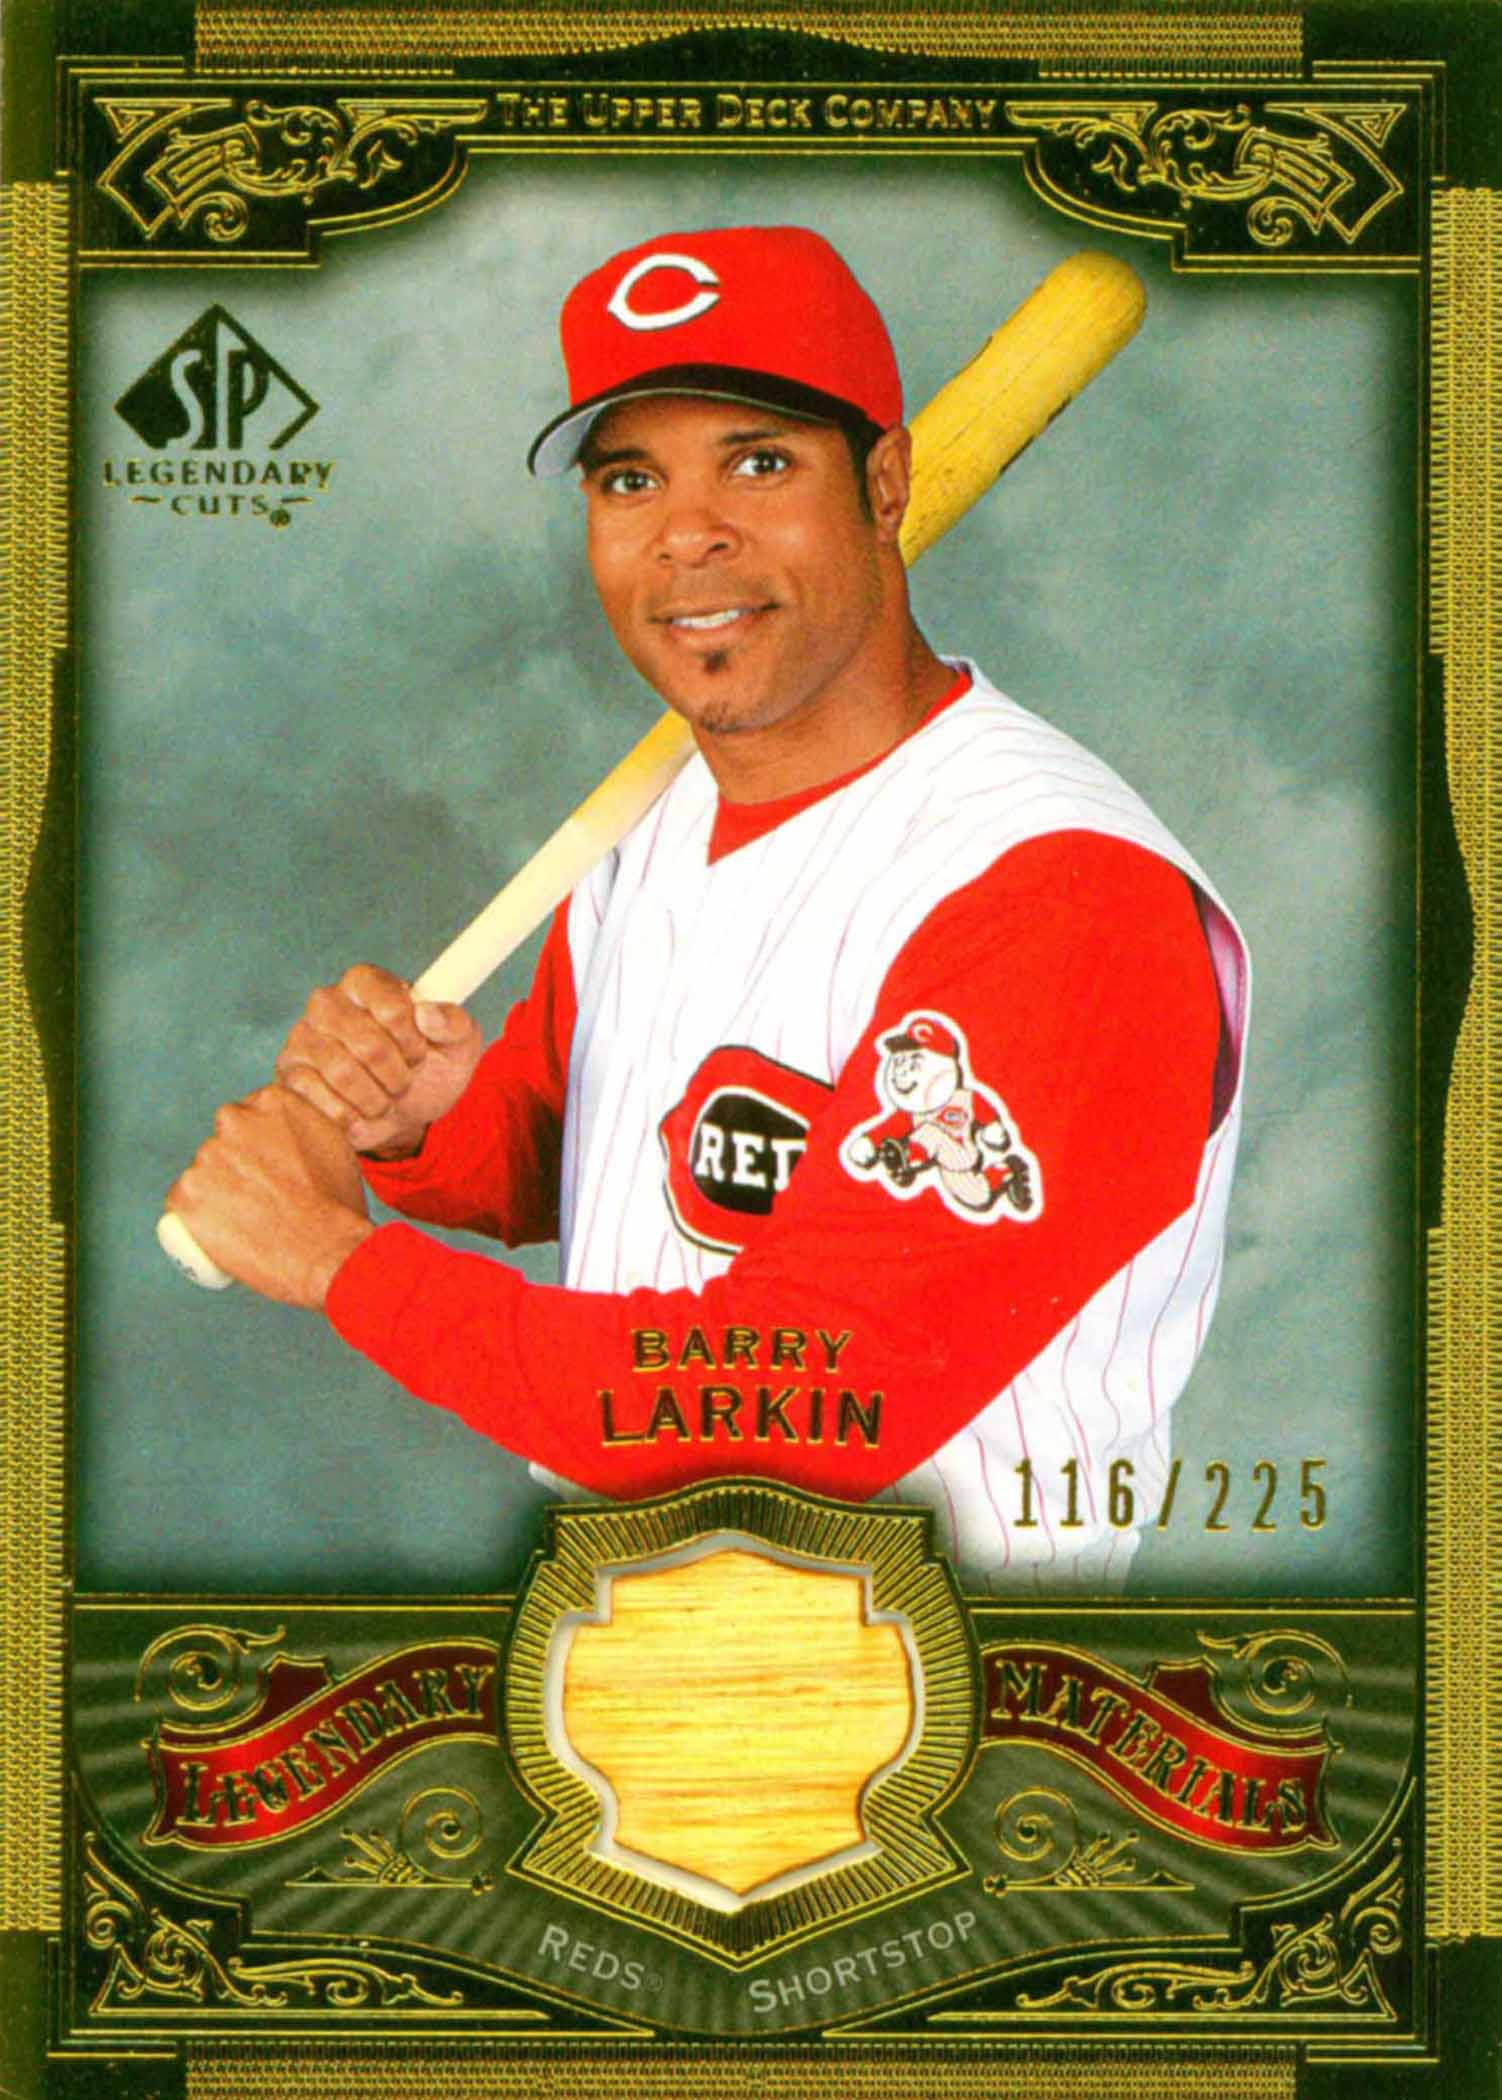 2006 SP Legendary Cuts Legendary Materials Gold Bat